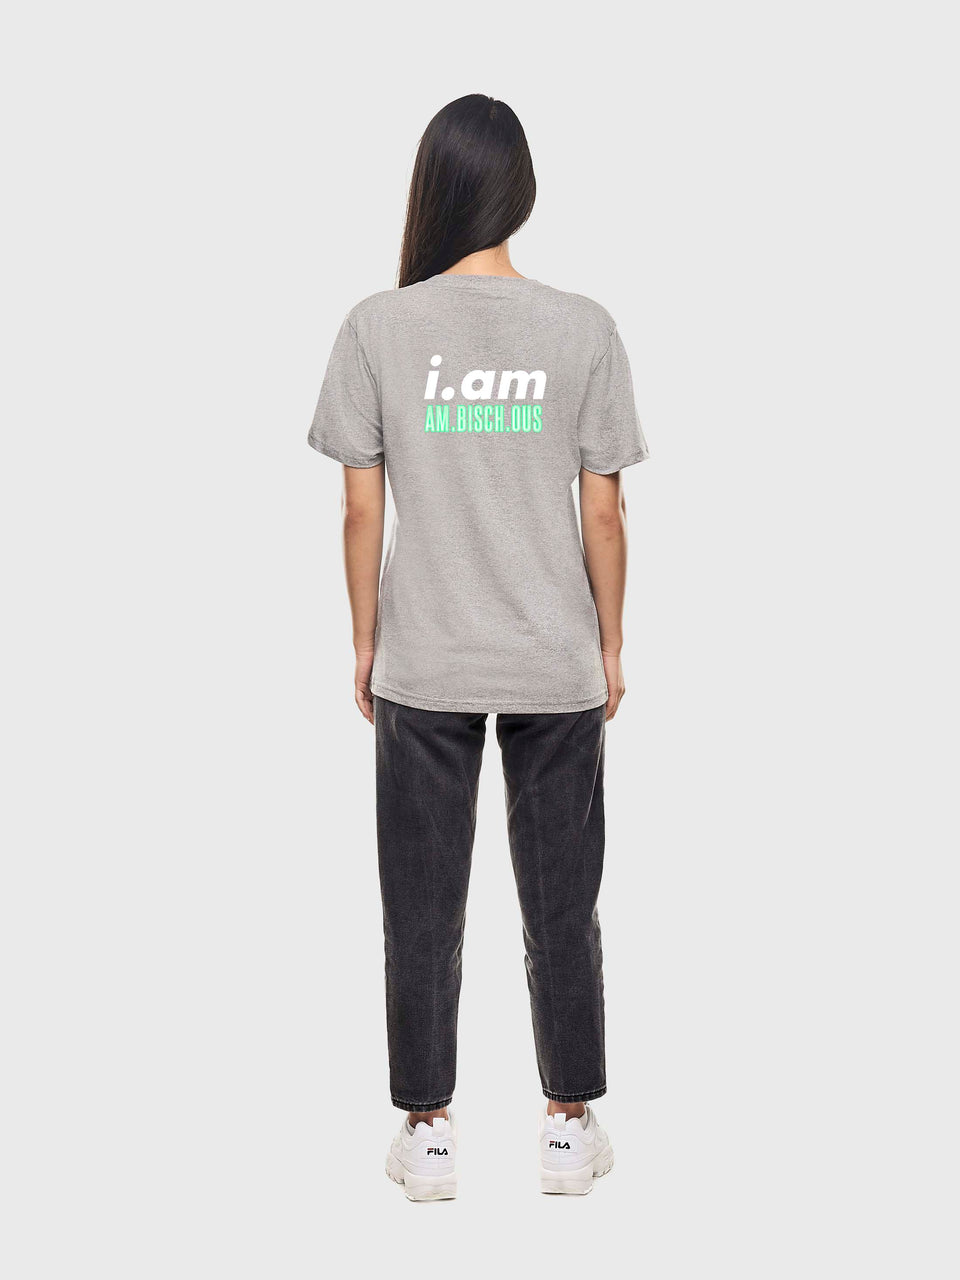 Am.bisch.ous - Grey - Unisex T